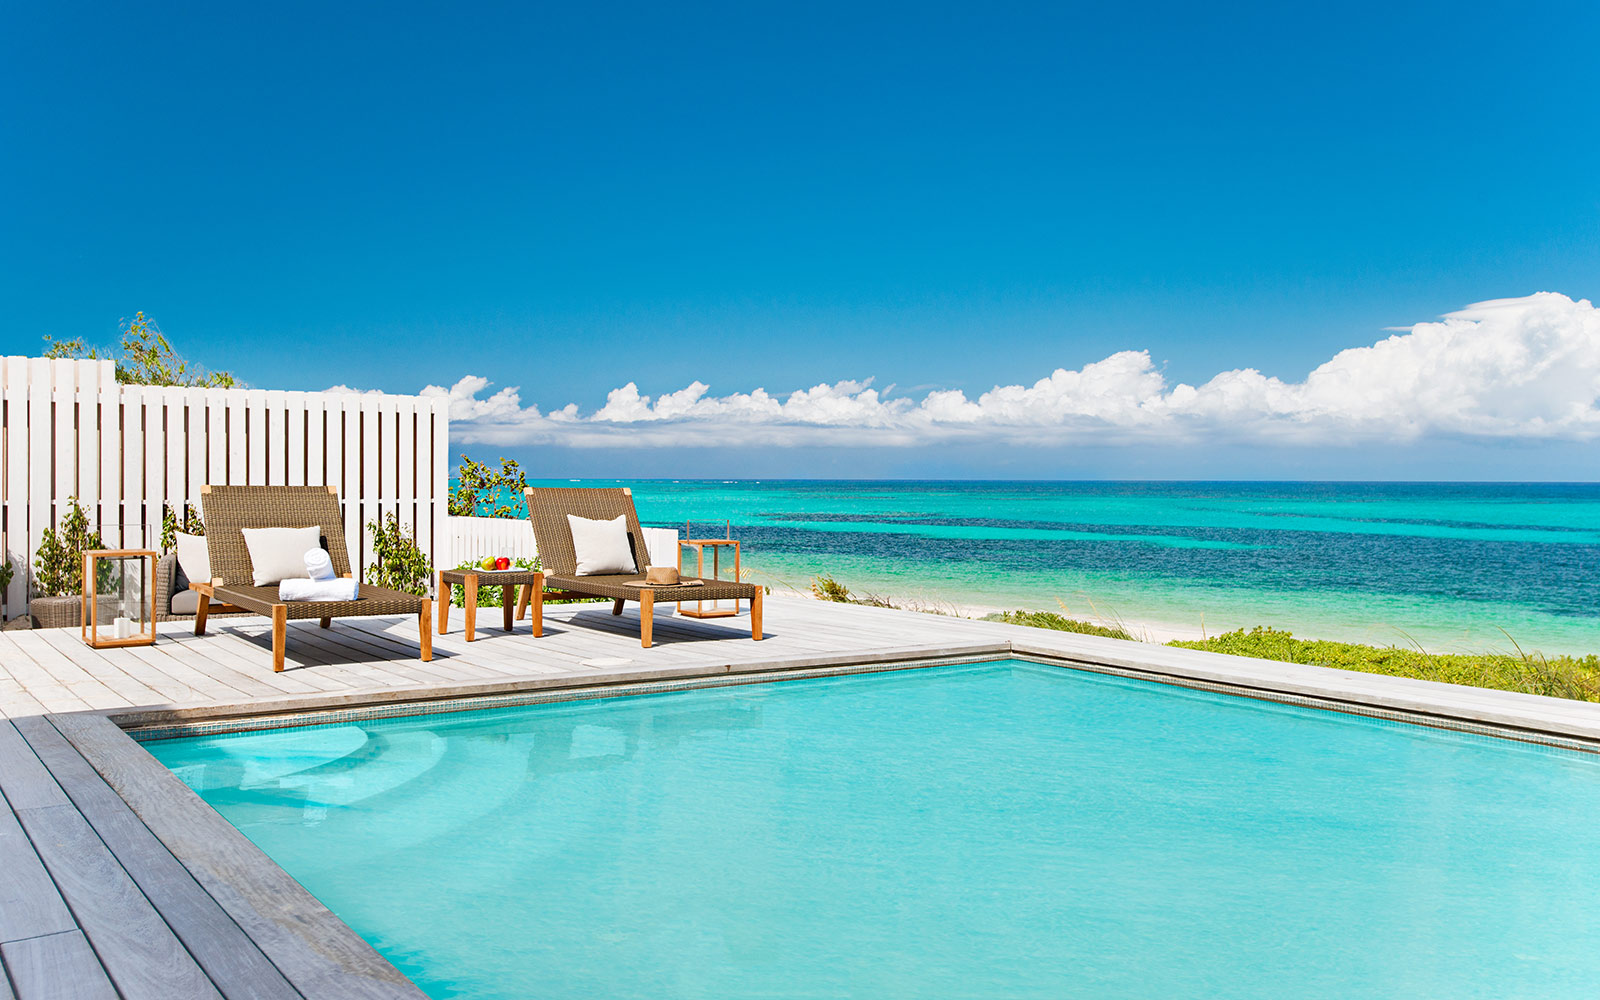 Sailrock Resort, Turks and Caicos